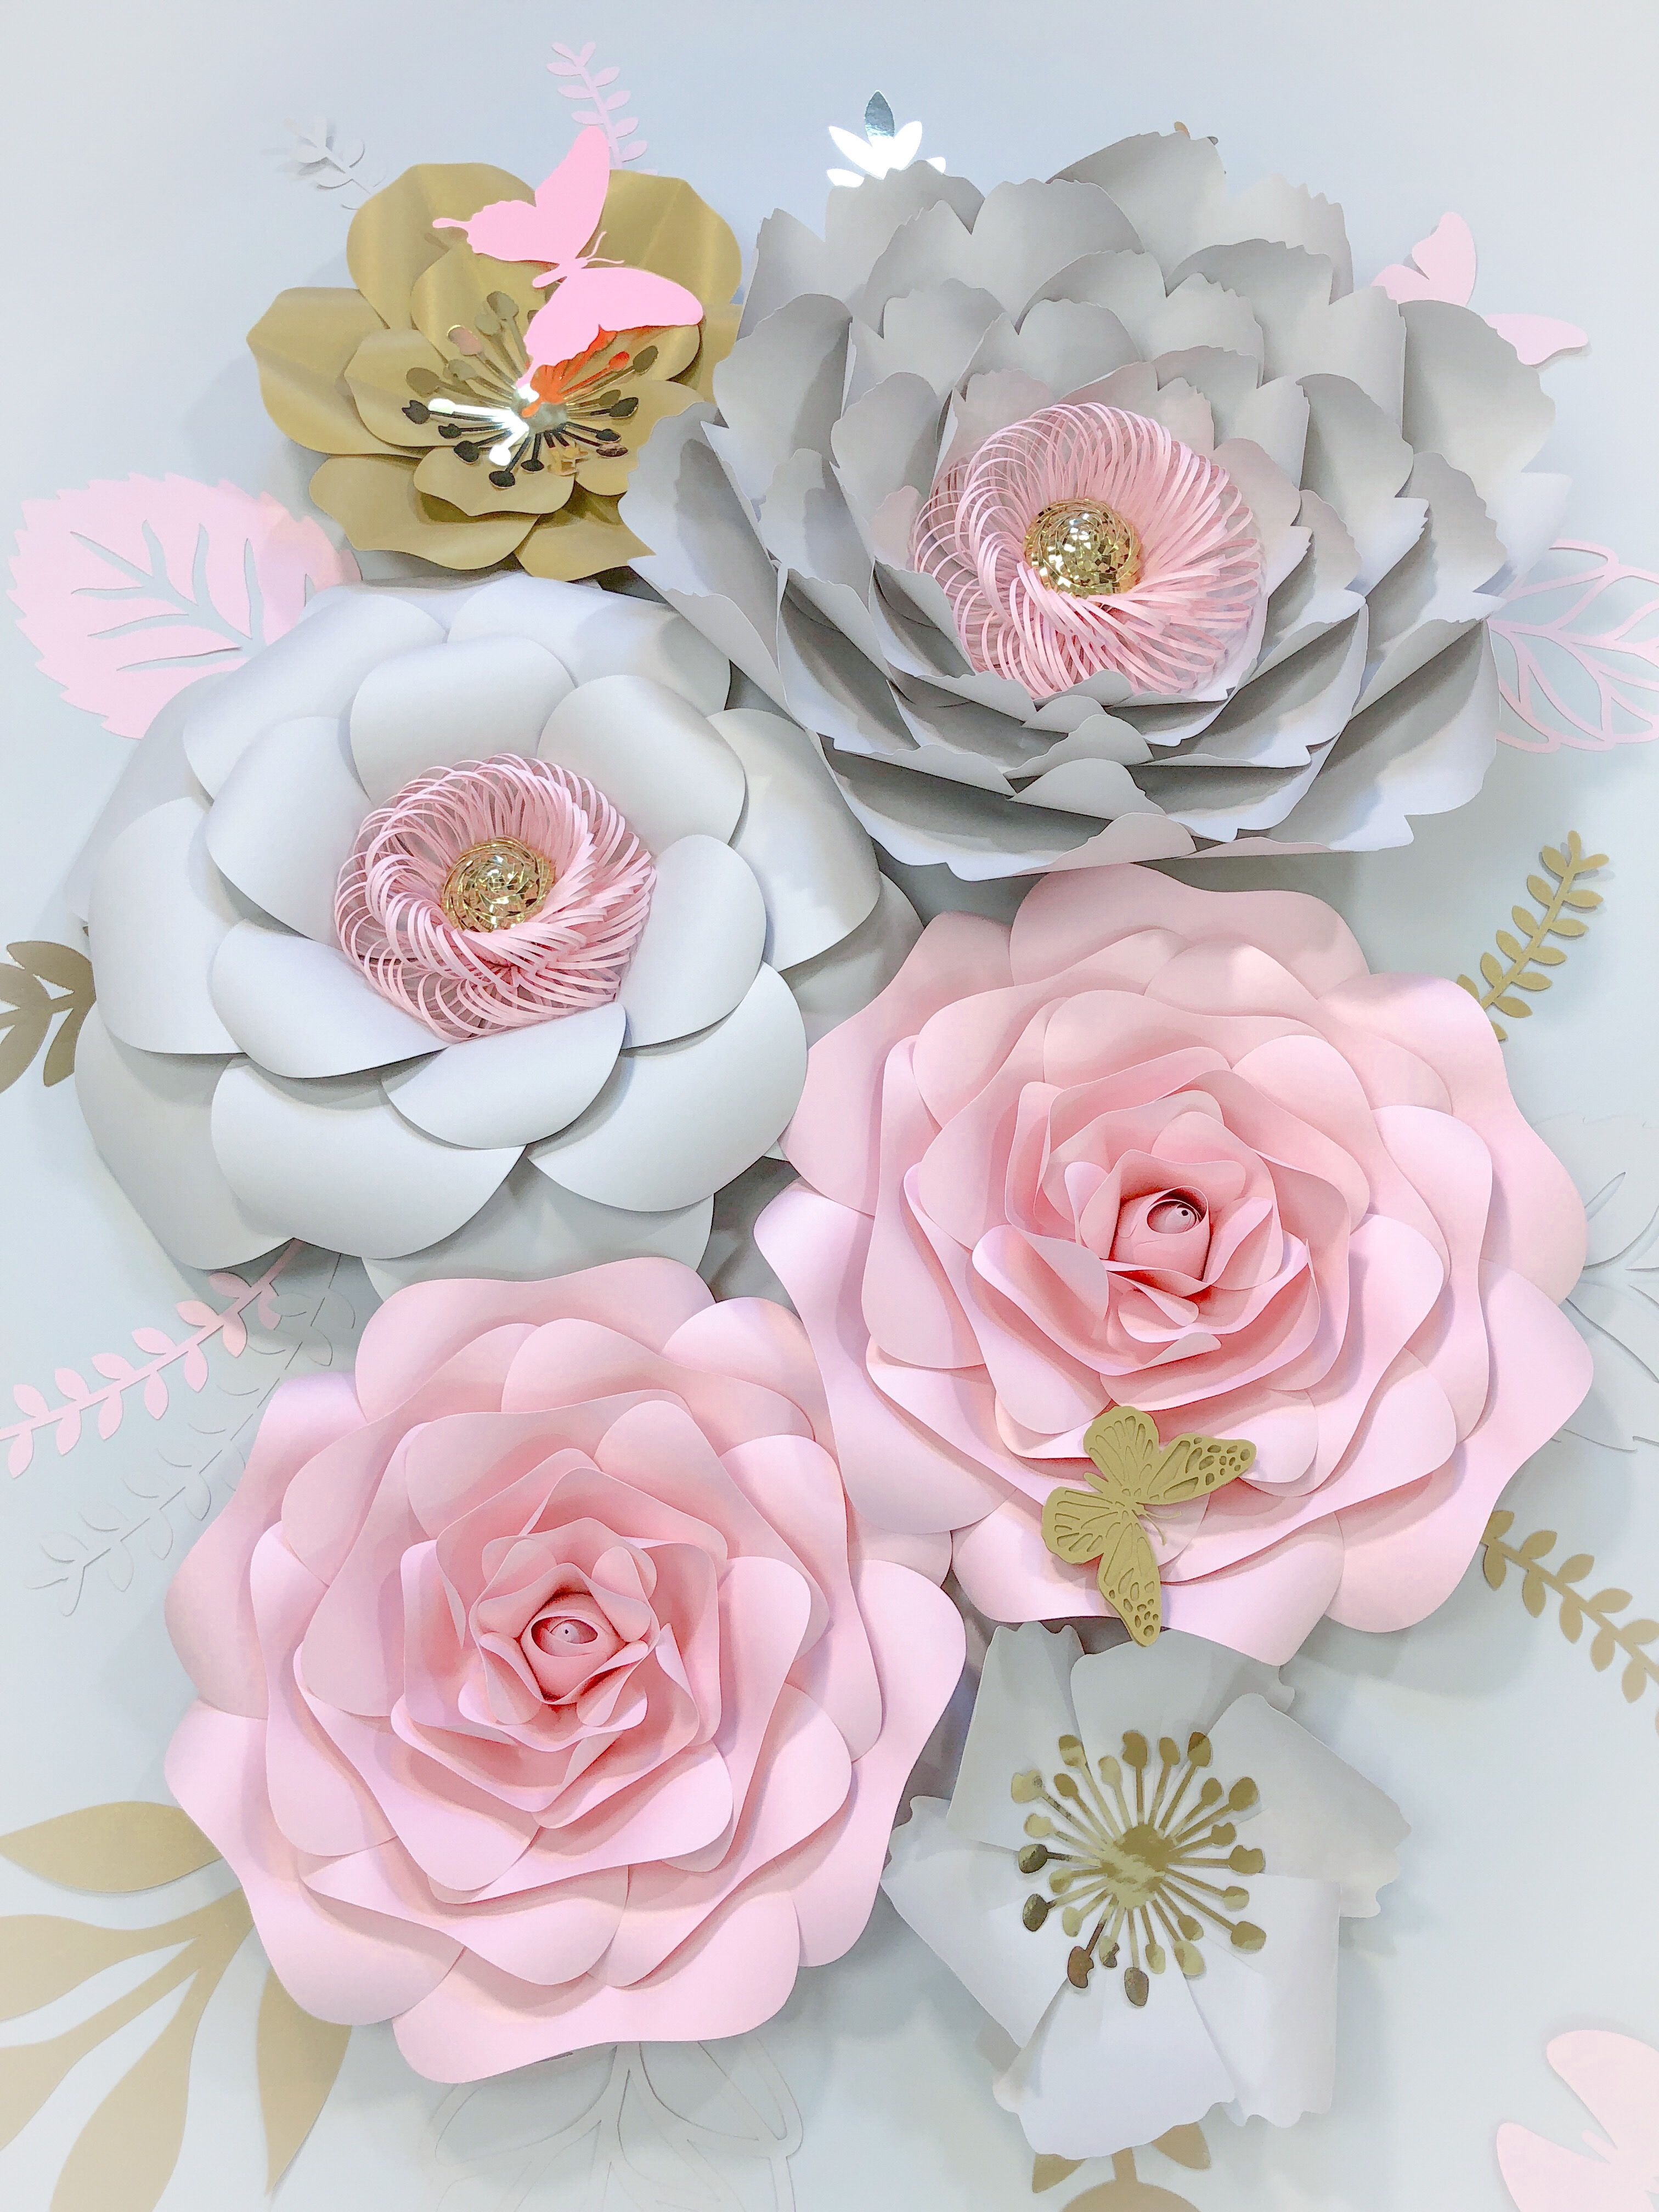 Large Paper Flowers Wall Decor Blush Grey Nursery Girl 3d Etsy Paper Flower Wall Decor Flower Nursery Decor Large Paper Flowers Wall Decor